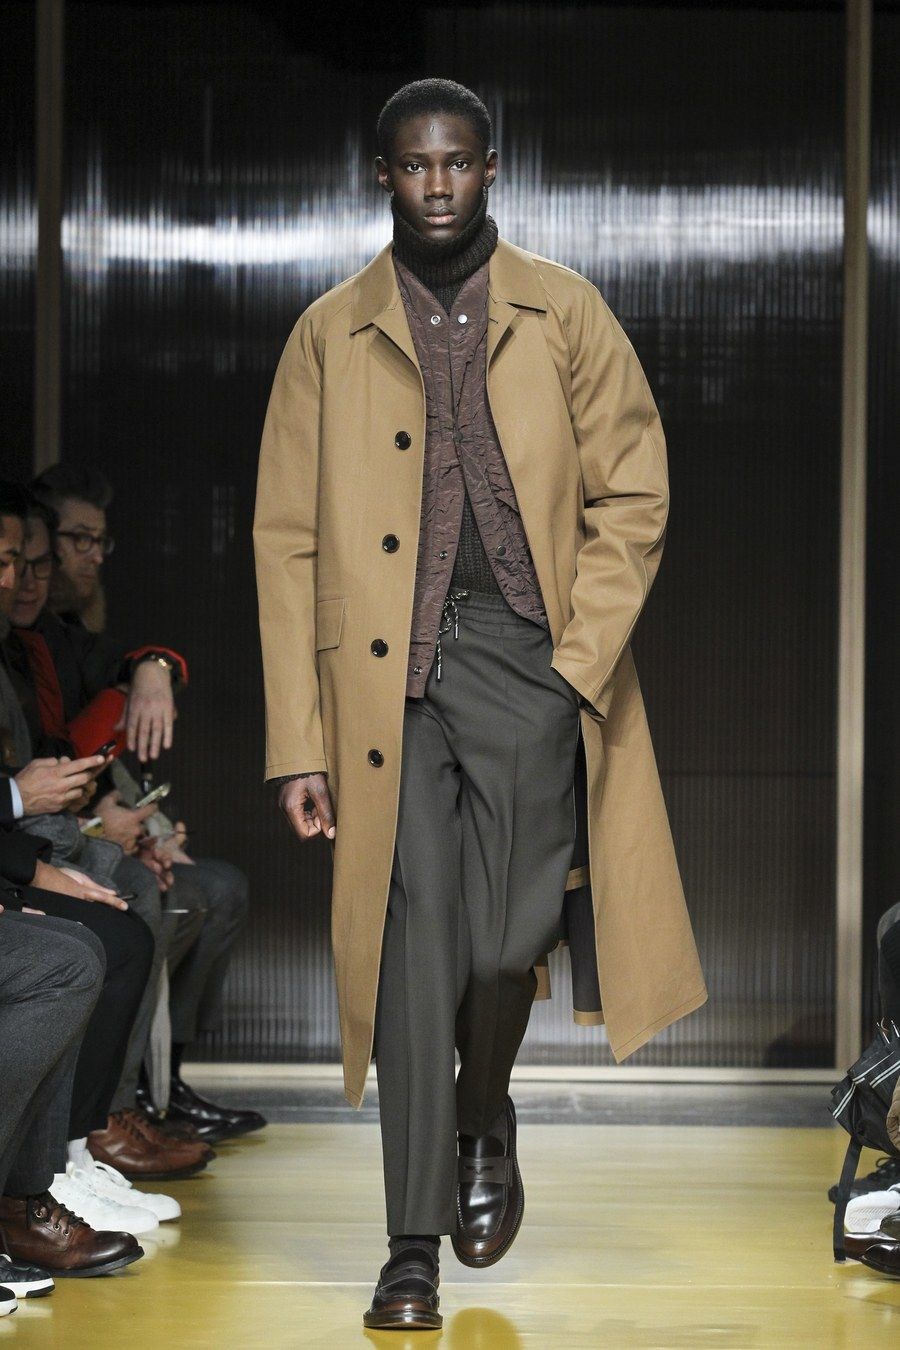 Boss fall menswear fashion show in mens fashion